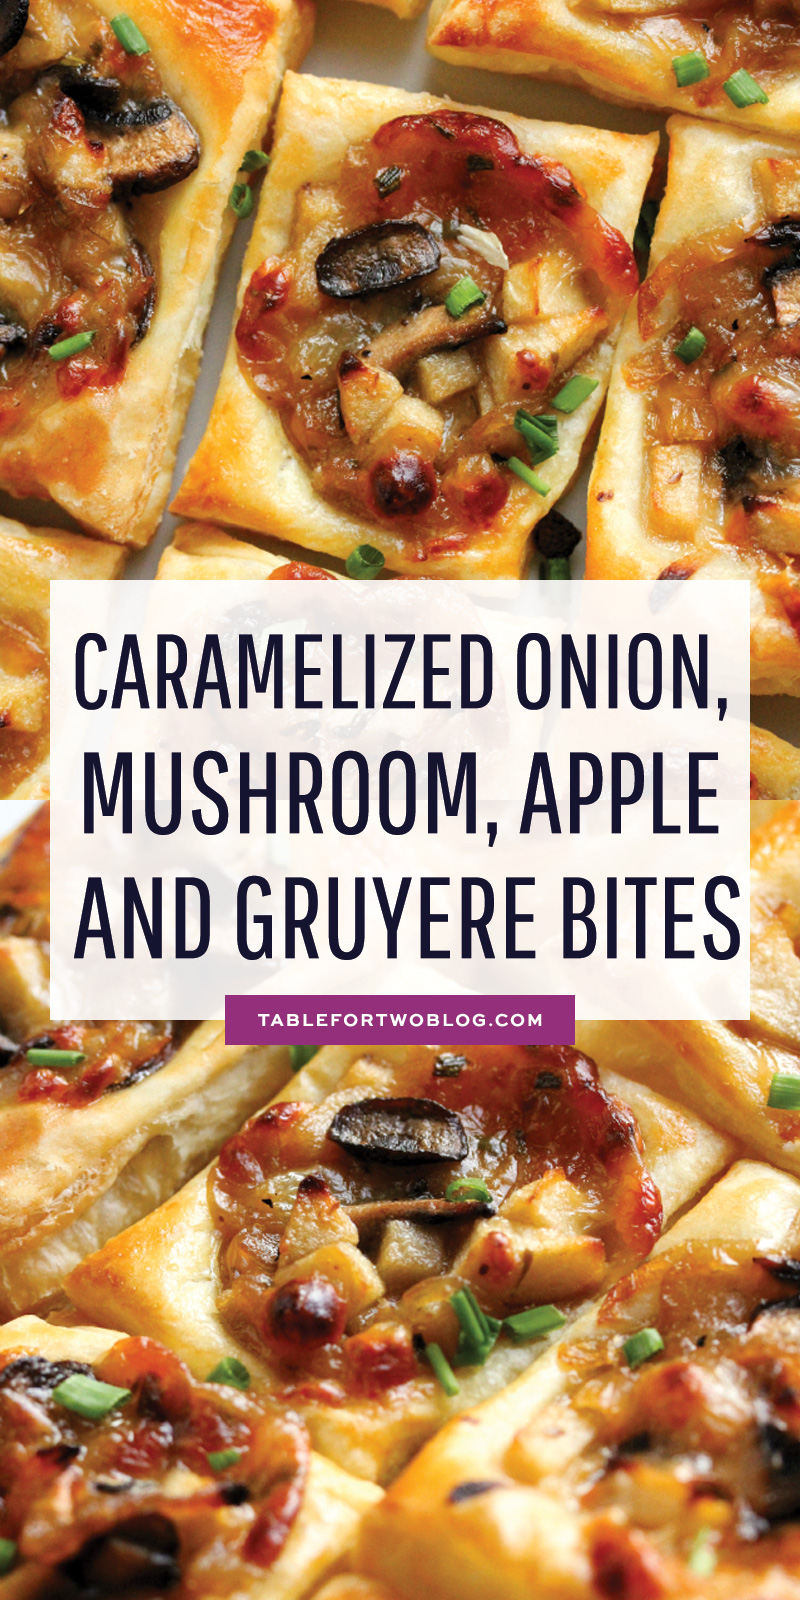 Caramelized Onion, Mushroom, Apple, and Gruyere Bites are the PERFECT appetizer! #thanksgivingappetizer #appetizers #thanksgivingrecipes #thanksgivingmenu #thanksgivingideas #appetizer #recipes